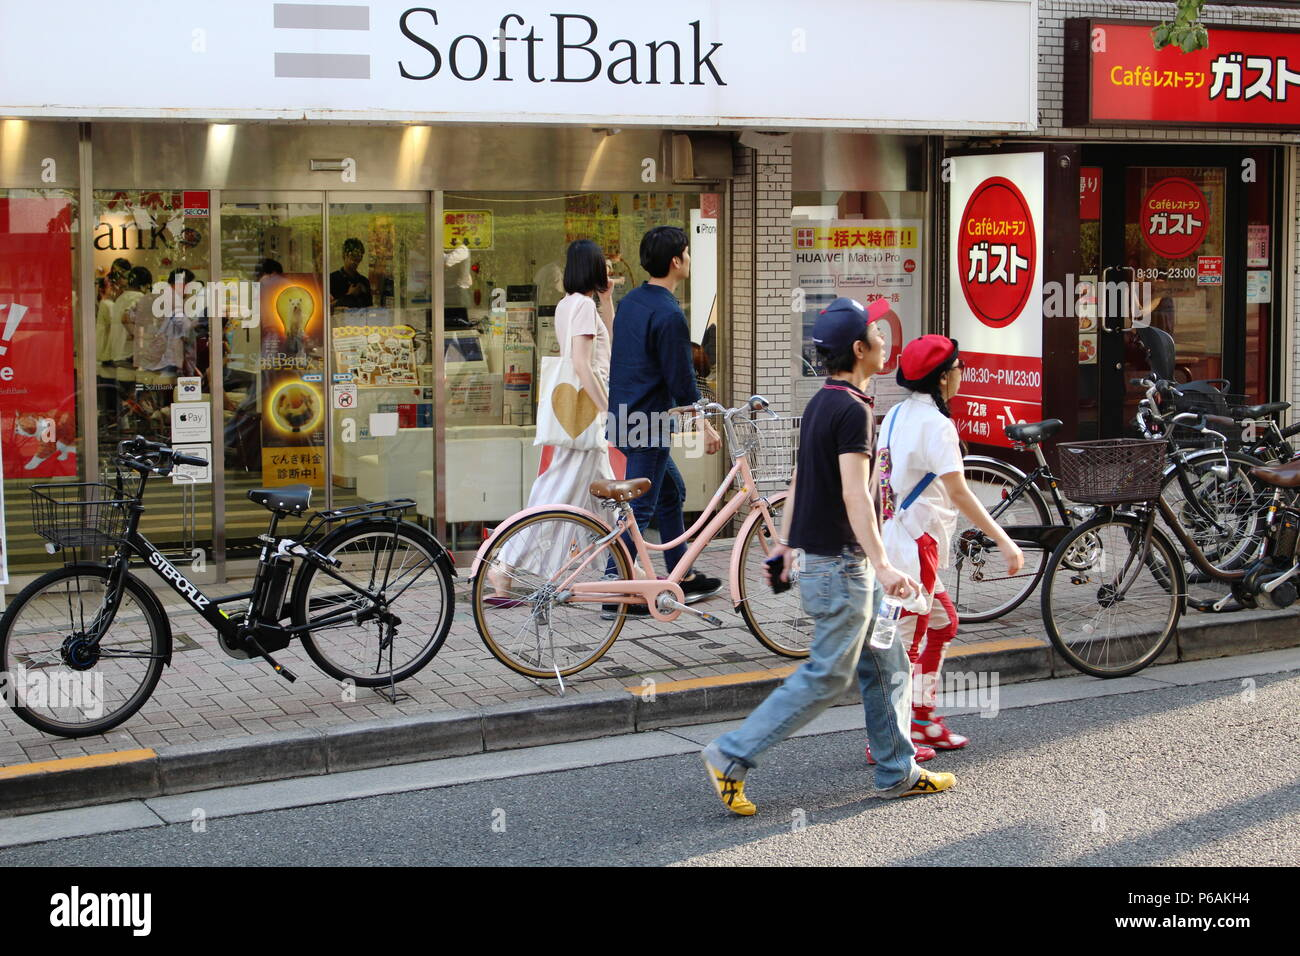 View of a street in the hilly Kagurazaka area with a Softbank branch and a Gusto restaurant. (6/2018) - Stock Image